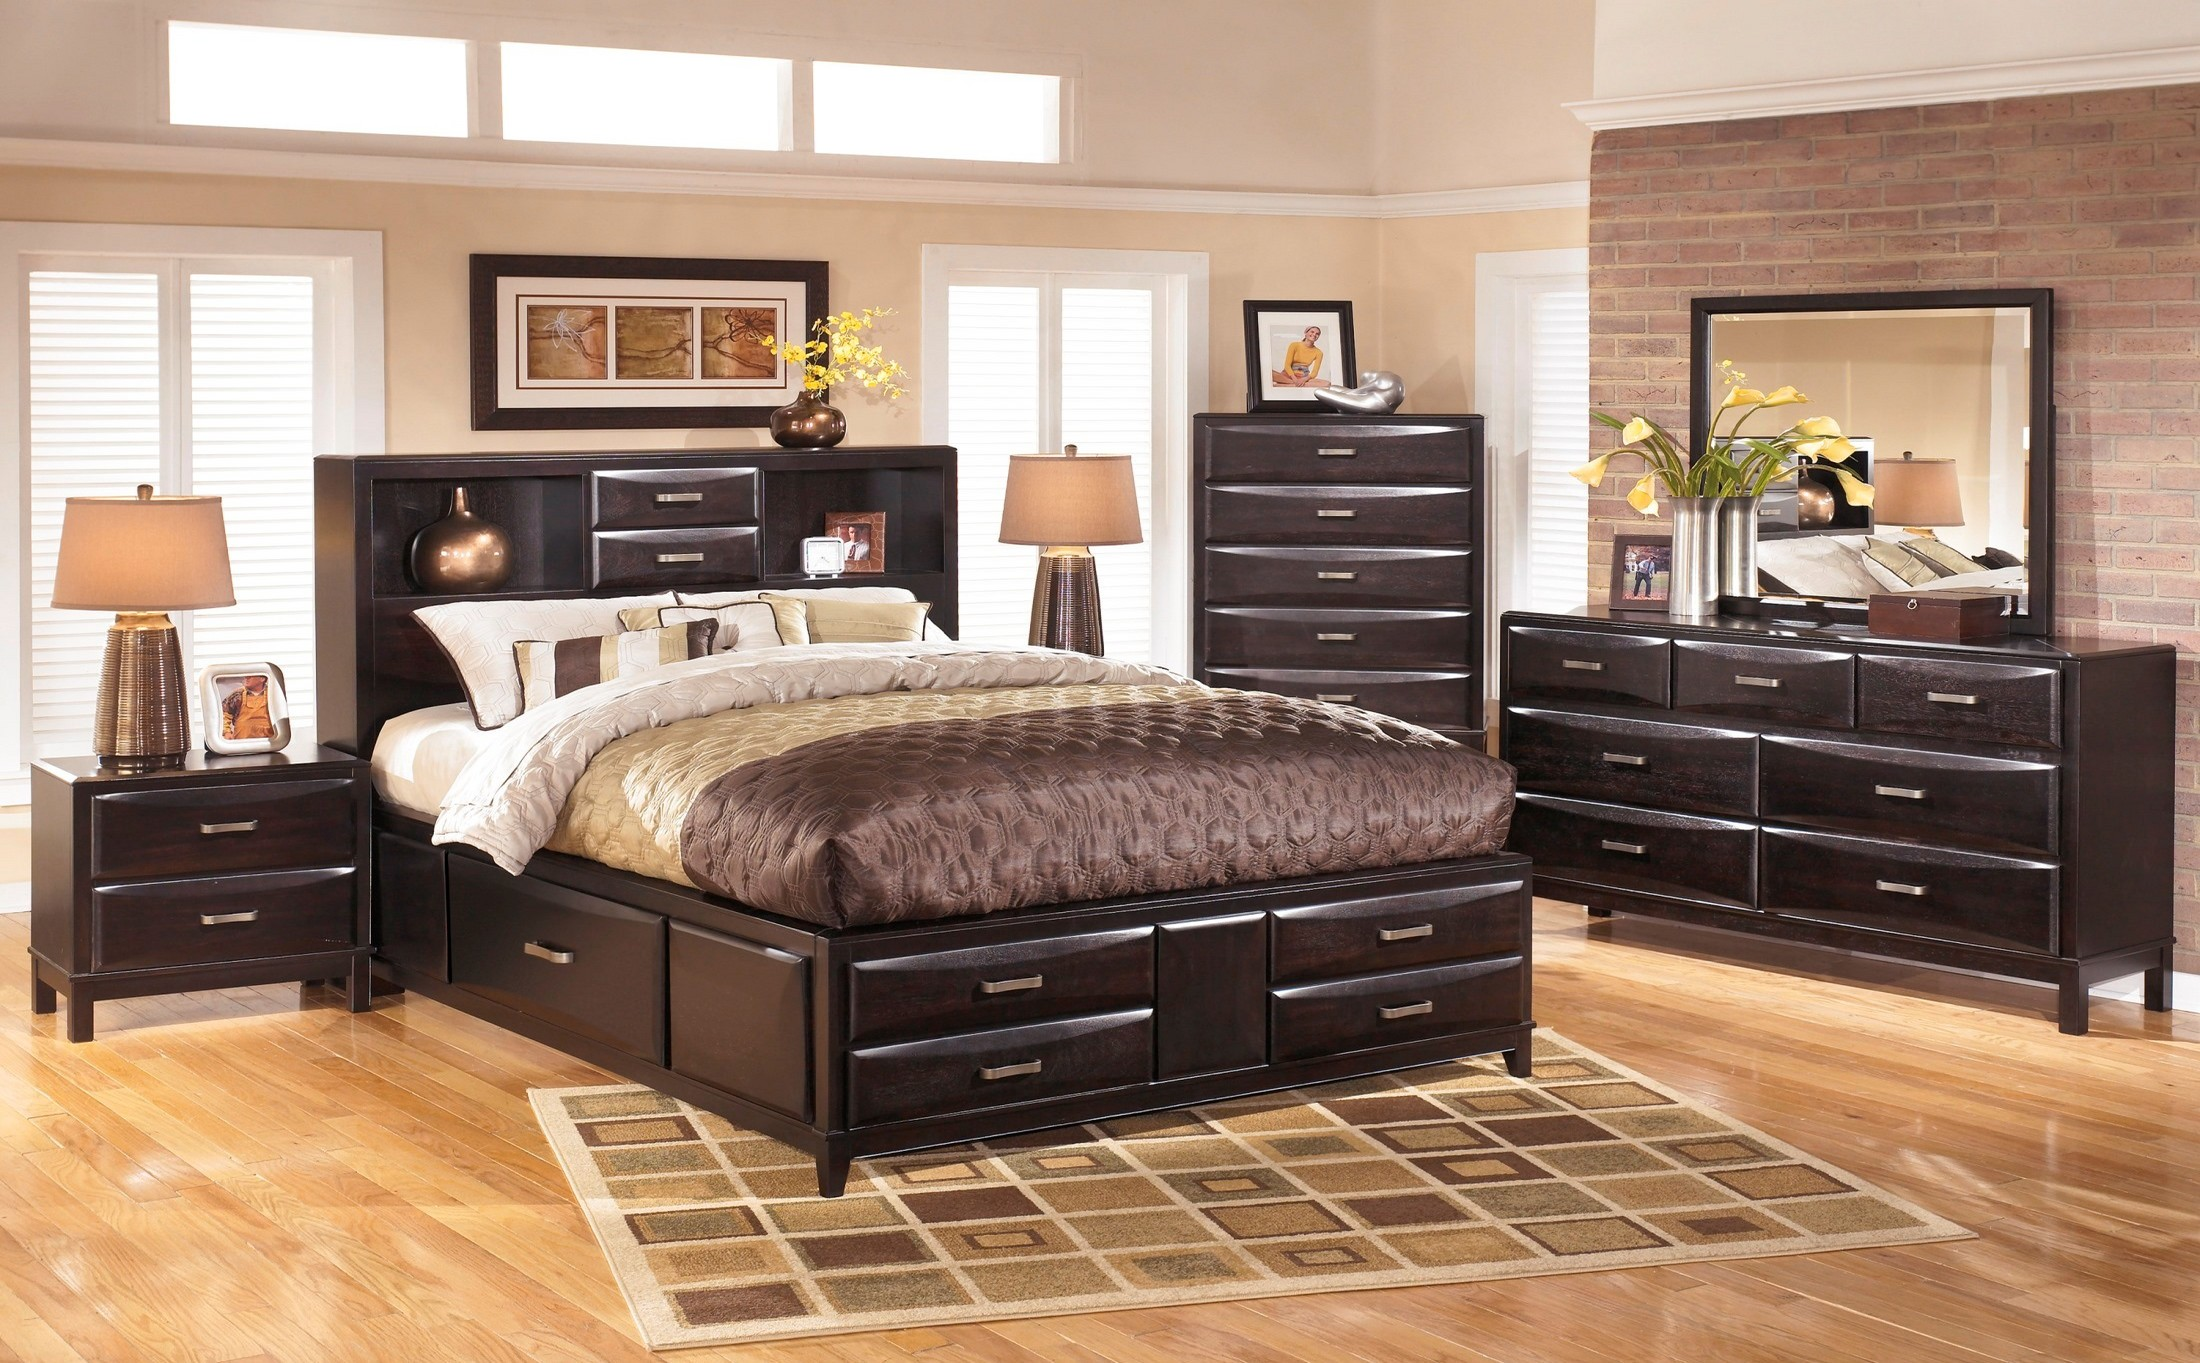 Ikea-Storage-Bed-Sets-Ideas